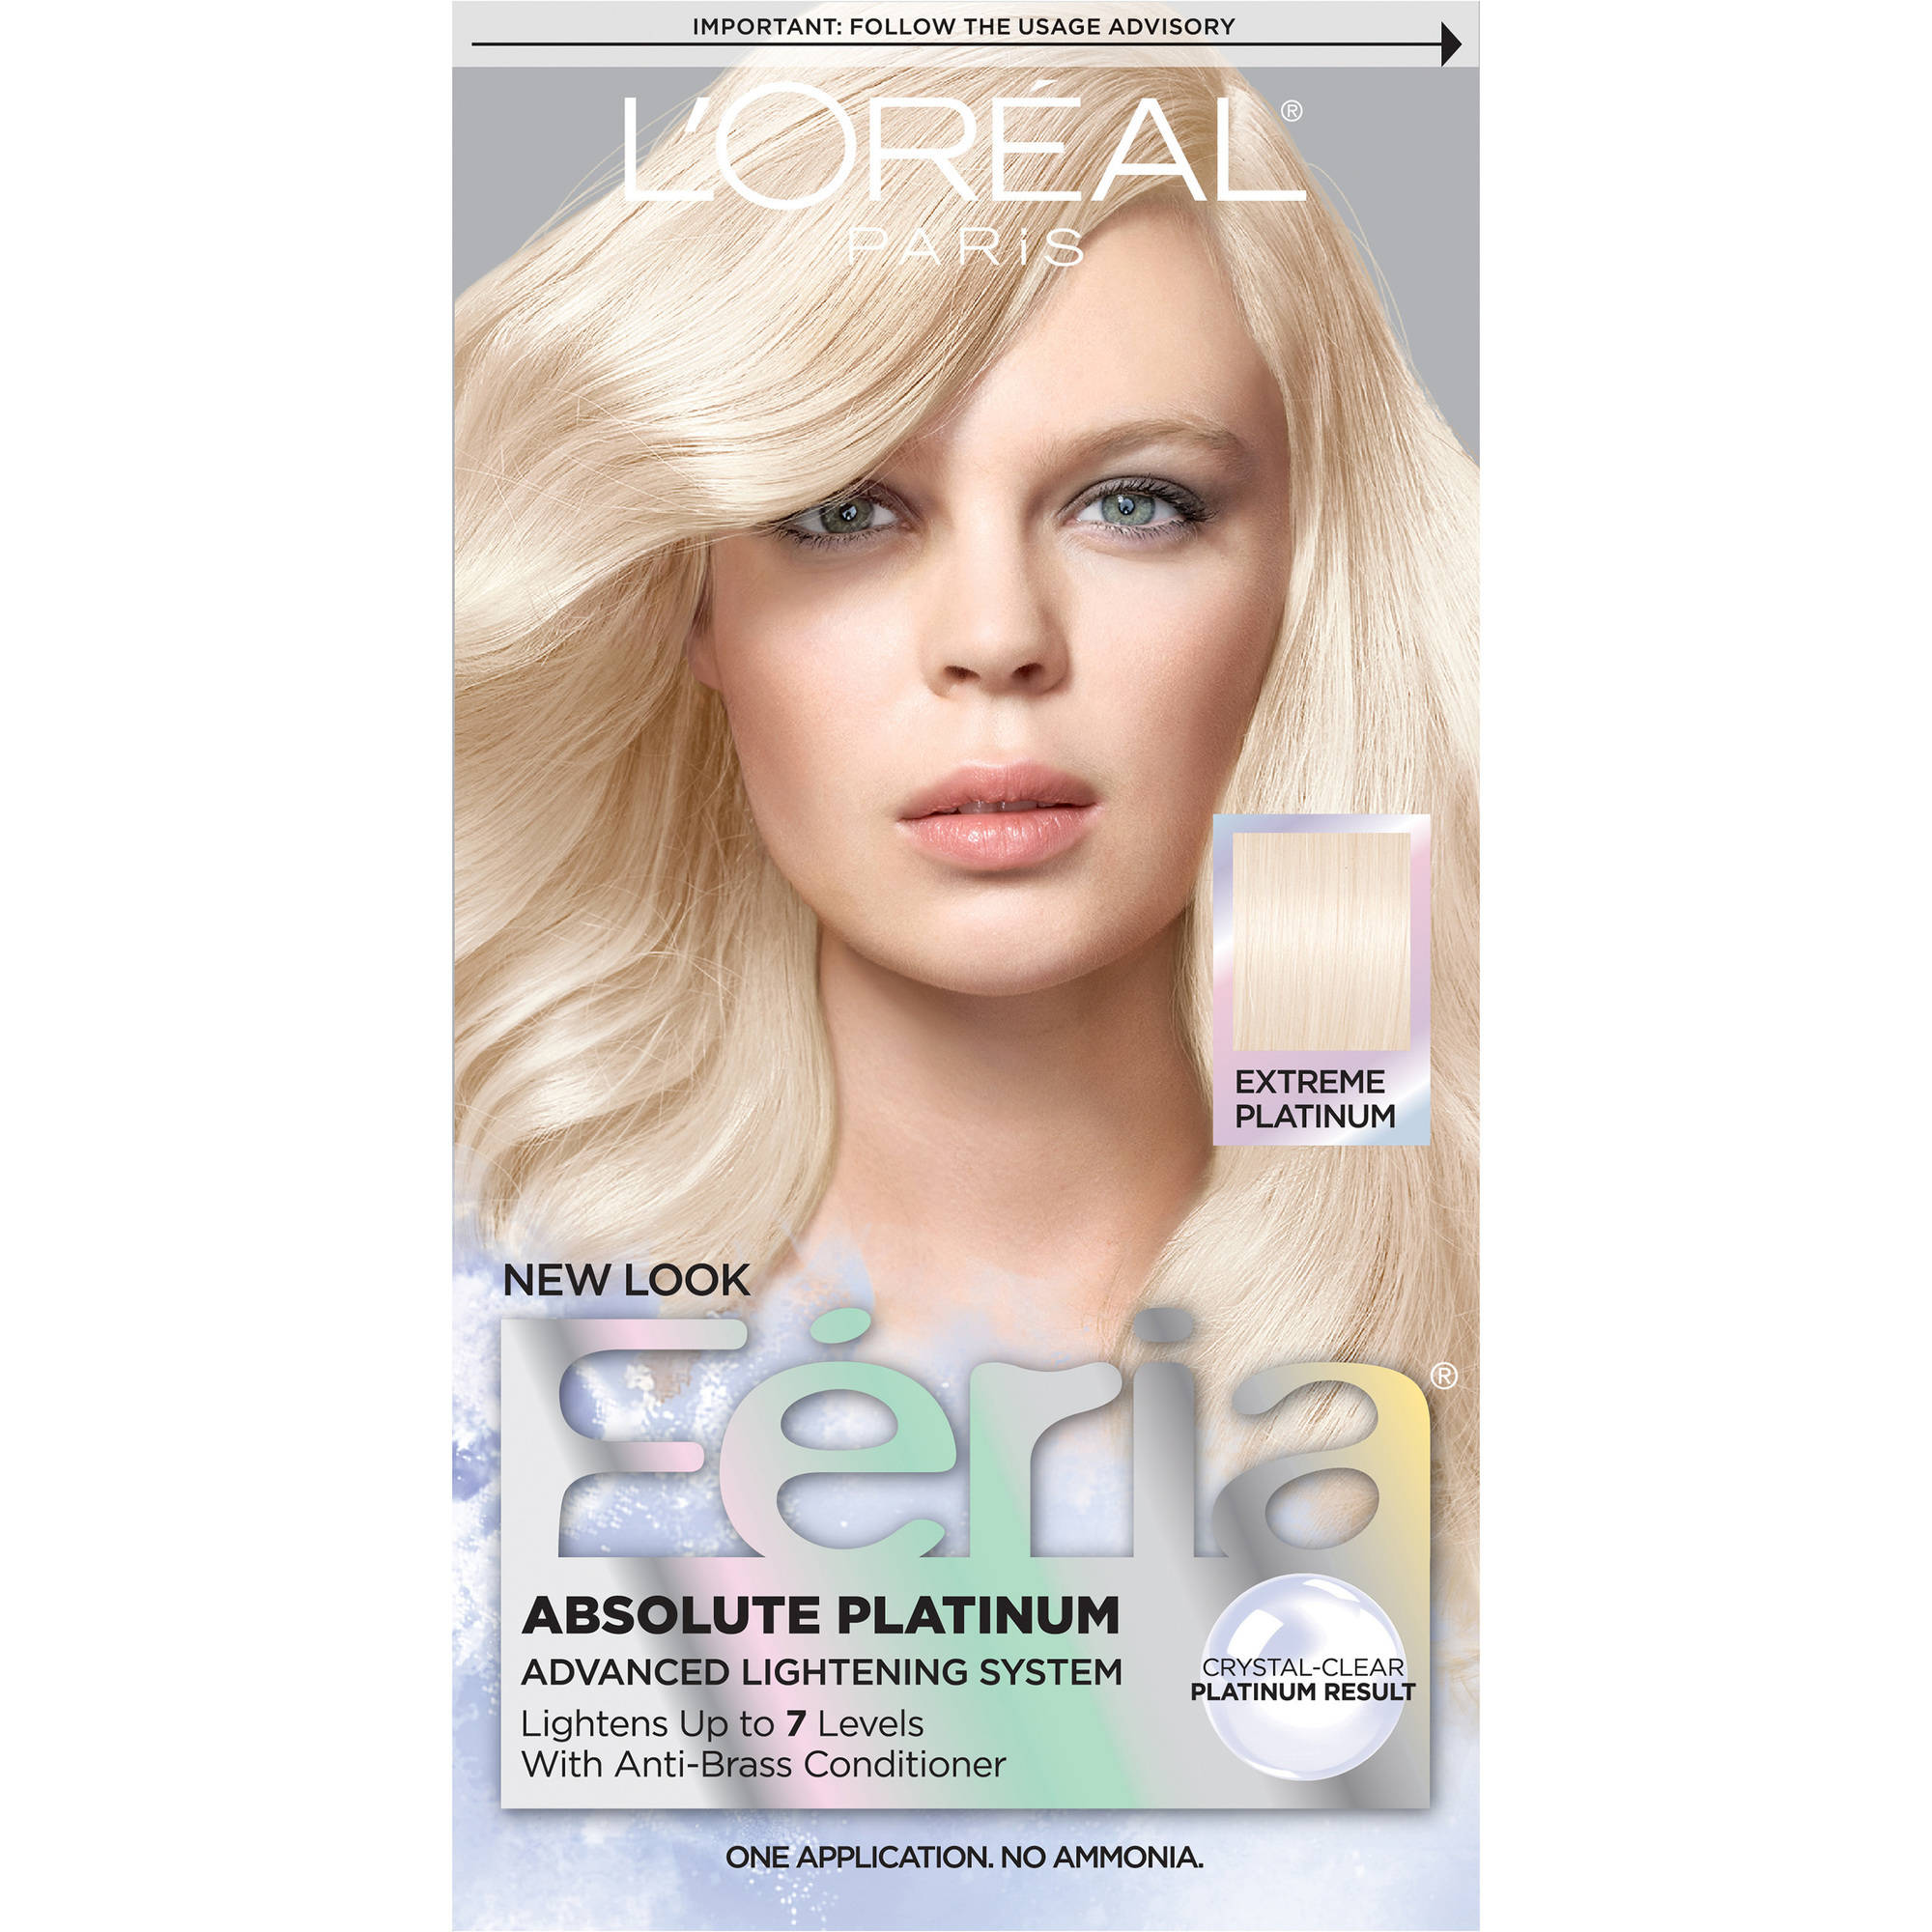 L'Oreal Paris Feria Absolute Platinum Advanced Lightening Haircolor